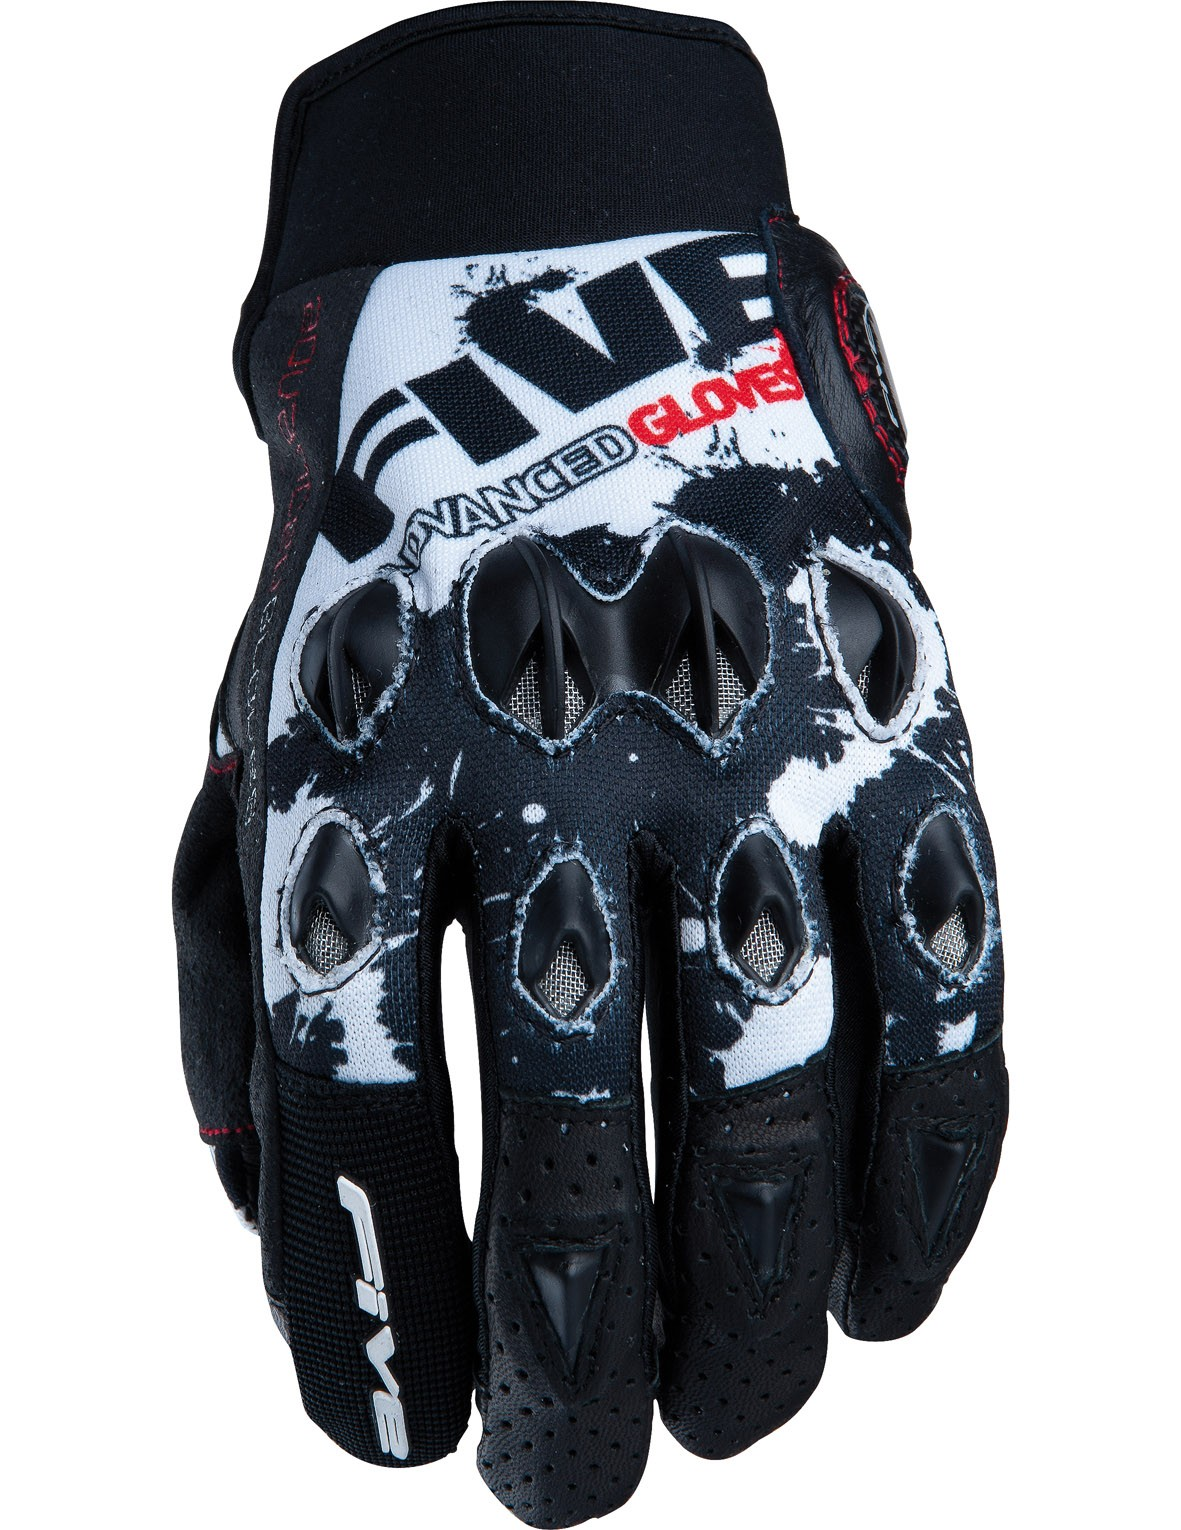 Перчатки FIVE, STUNT REPLICA Splash black/white L